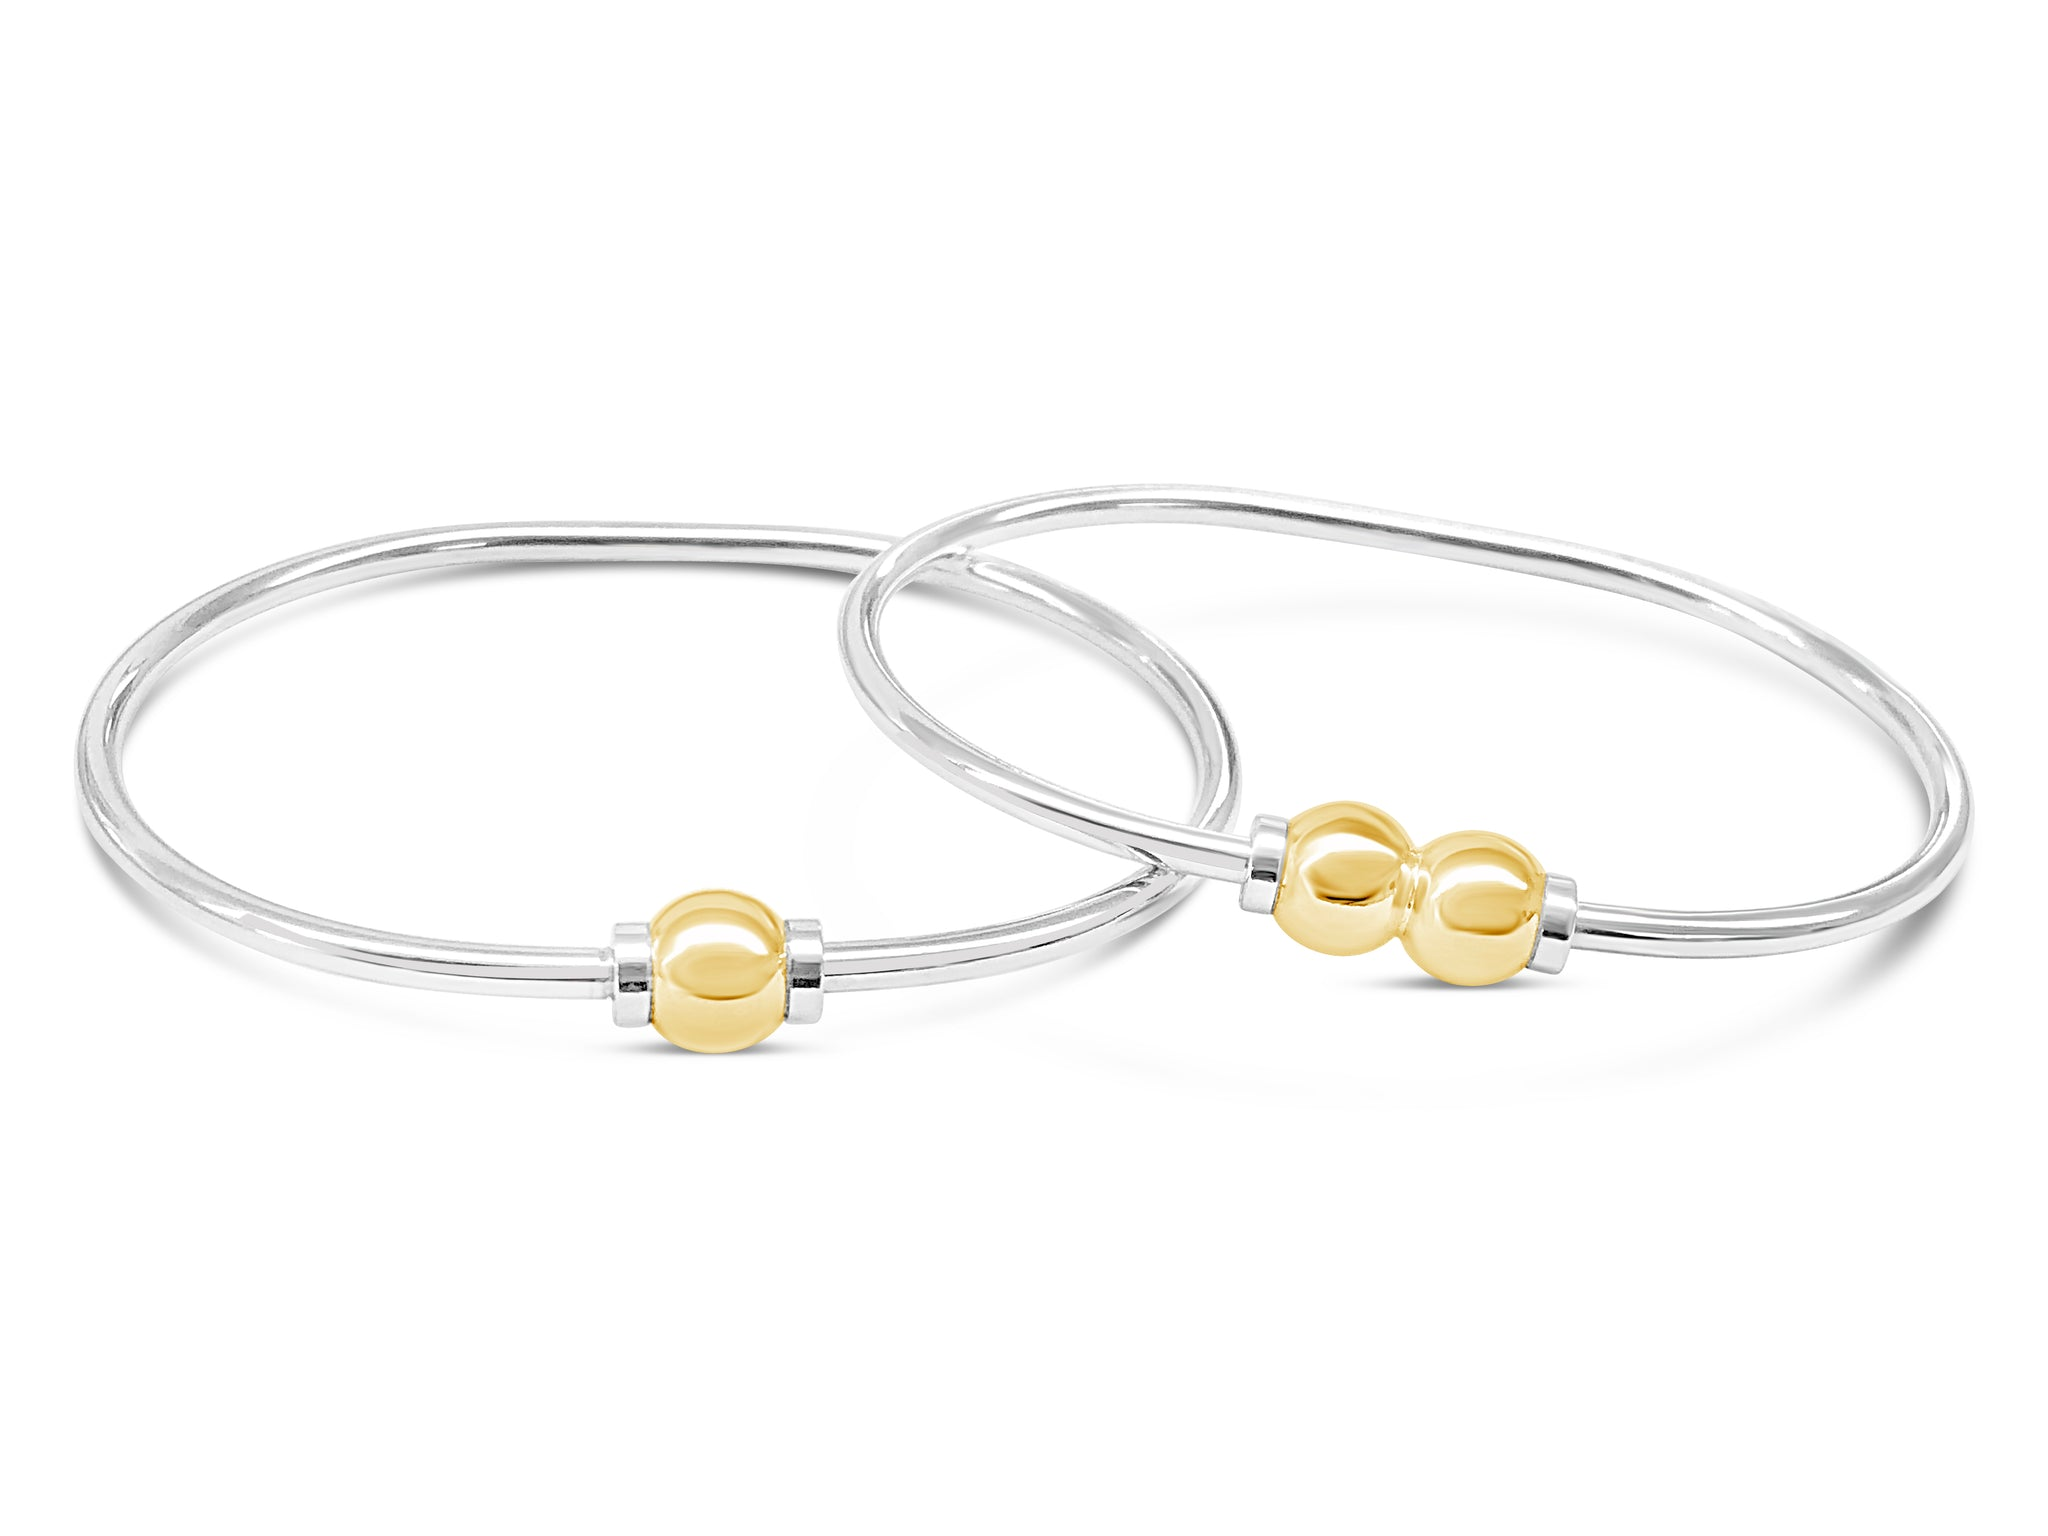 cape cod bracelets 14k gold, single ball cape cod beachball 2 ball bracelet made on cape cod